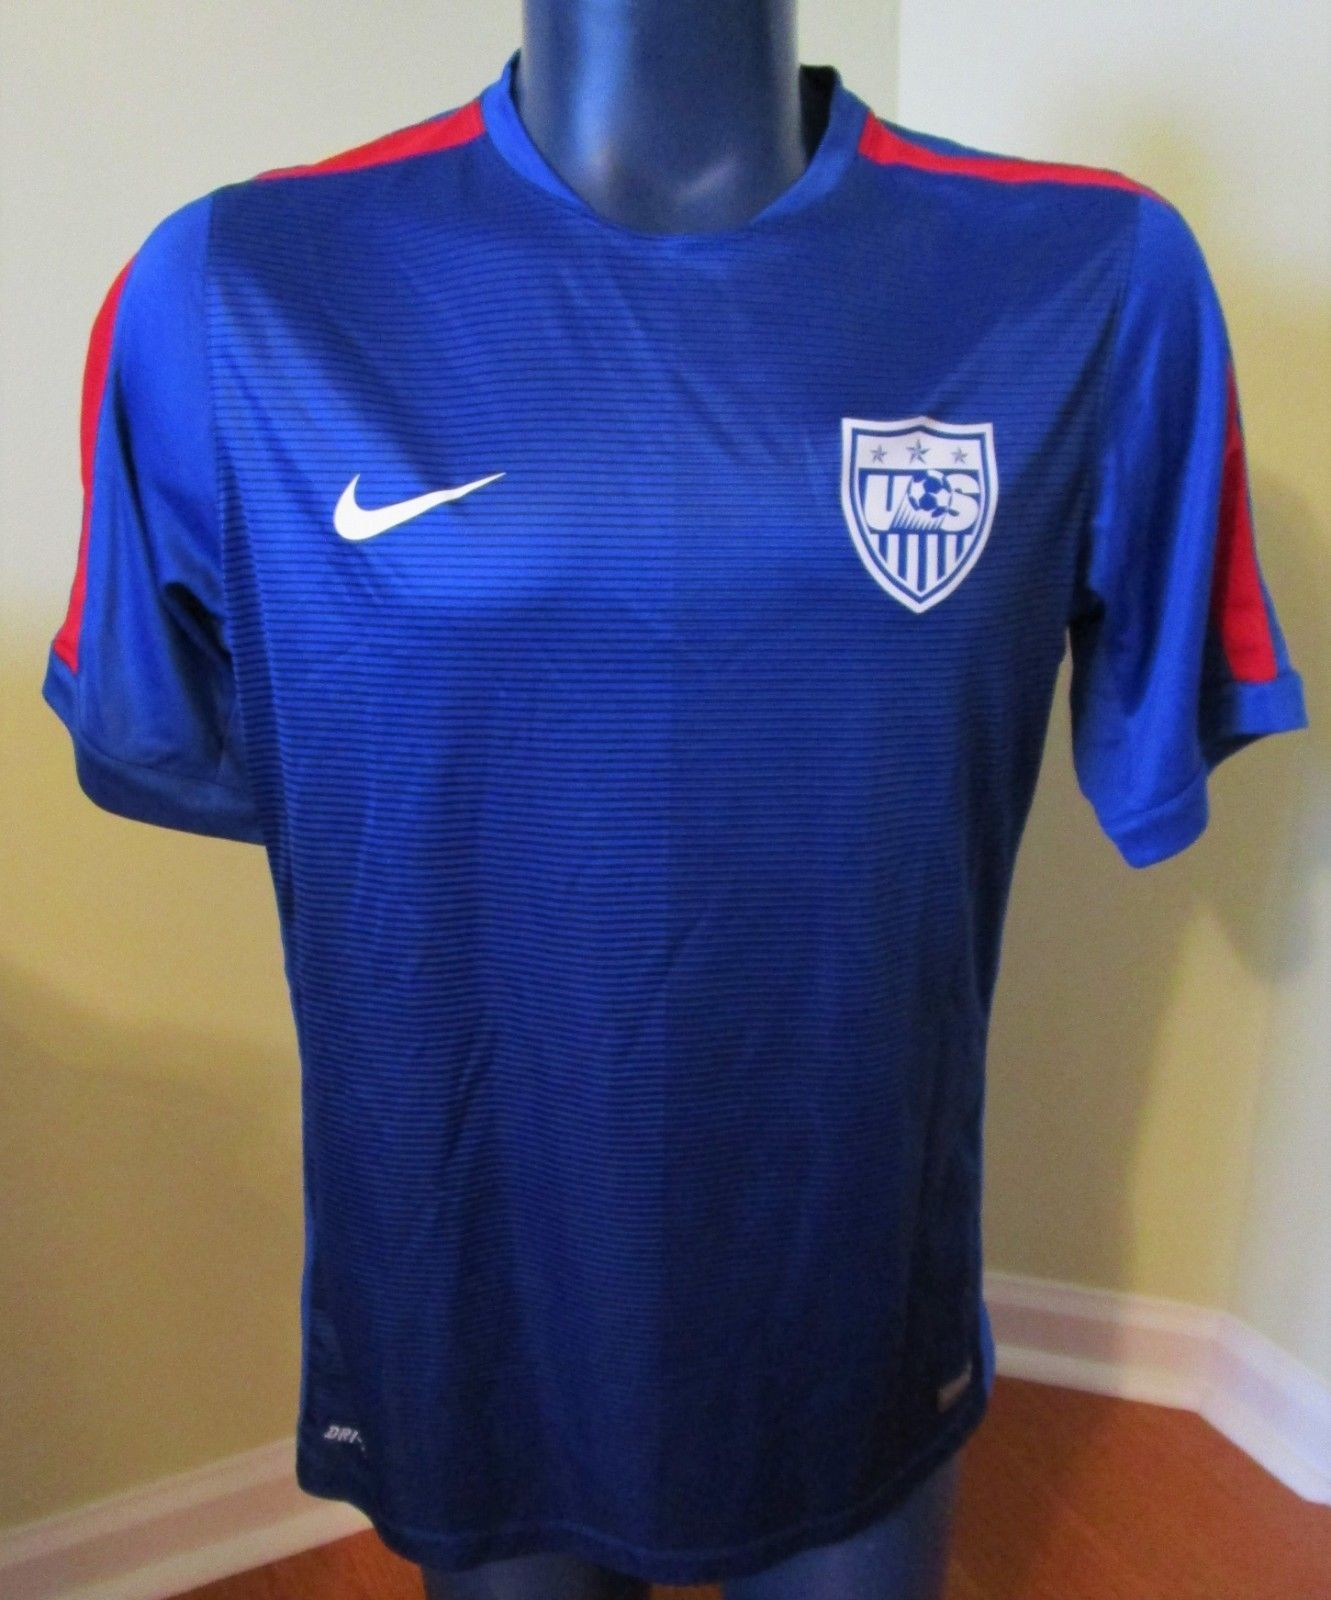 Primary image for NIKE 643865 480 MEN'S TEAM USA 2015 2016 Pre Match SQUAD training JERSEY XL